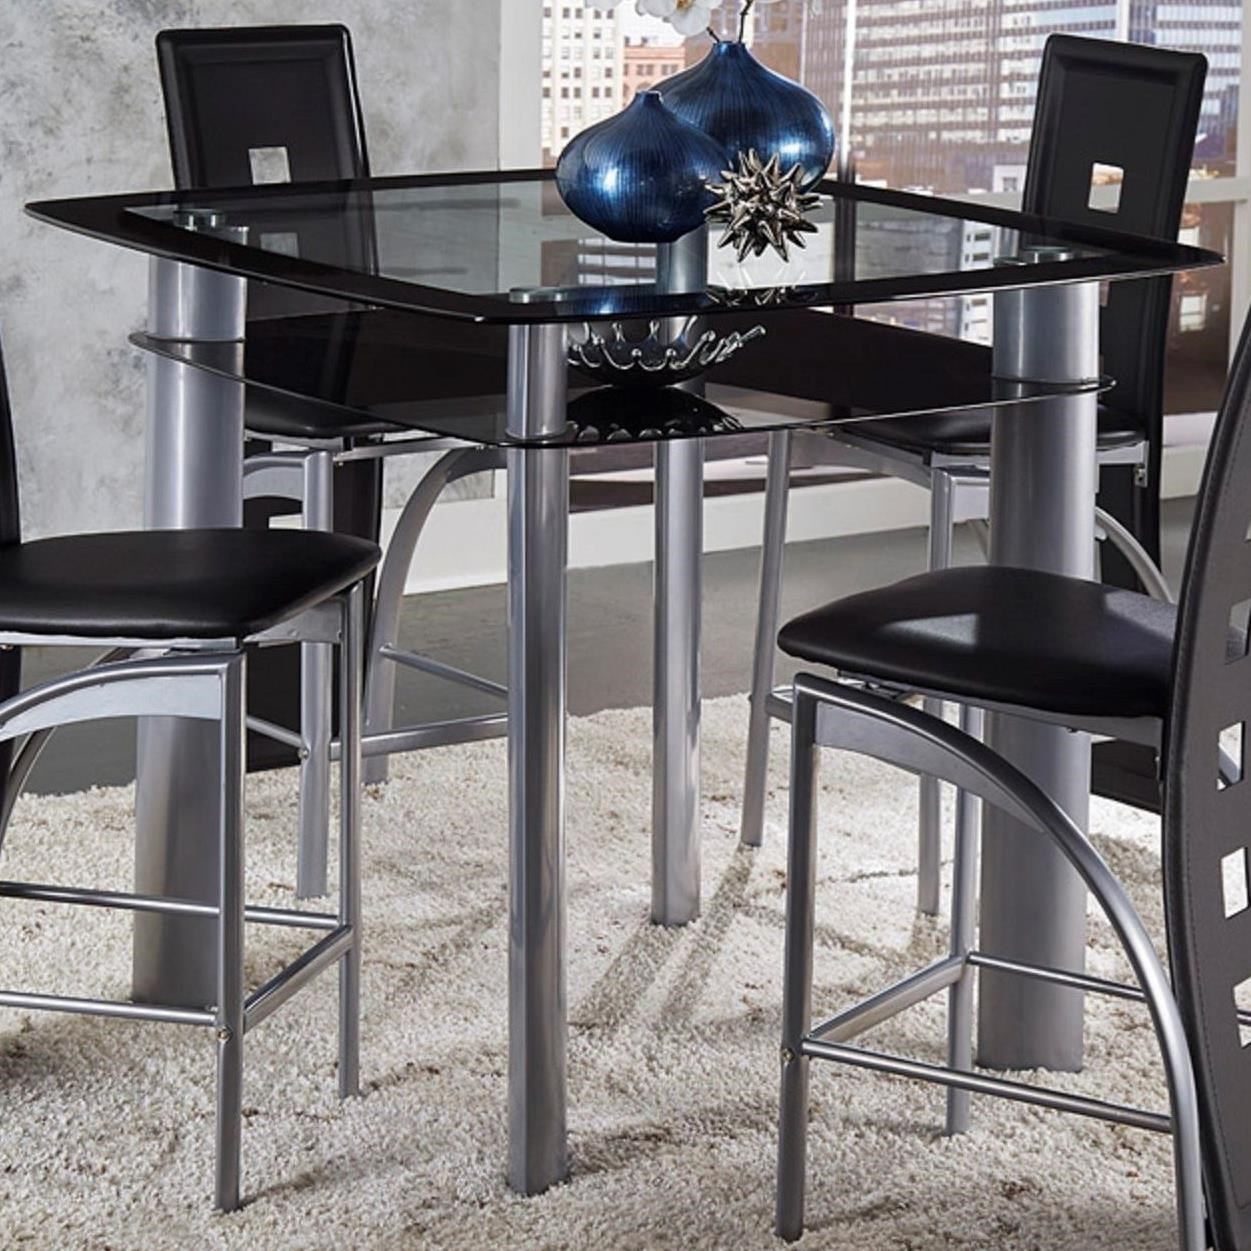 Genial Sona Counter Height Table With Glass Top And Shelf By Homelegance